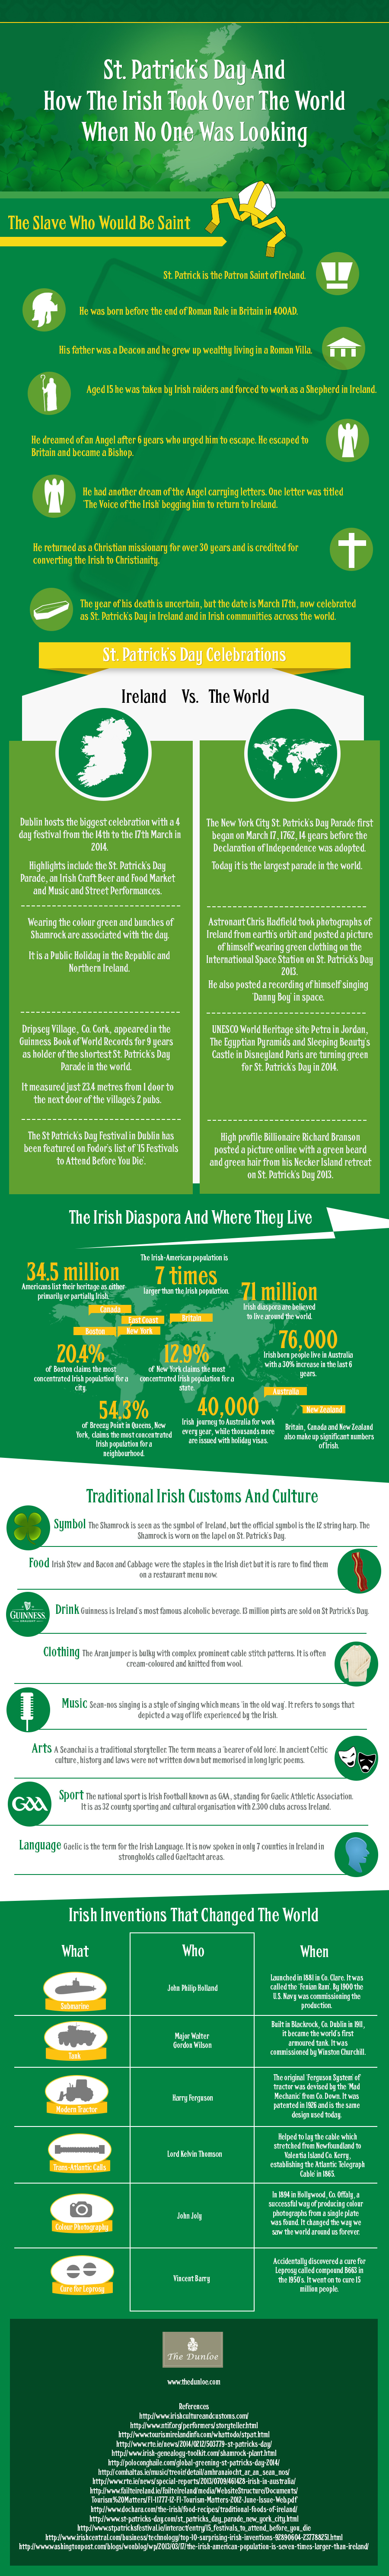 Here's some great information about St. Patrick's Day and his celebrations, from  http://www.thedunloe.com/